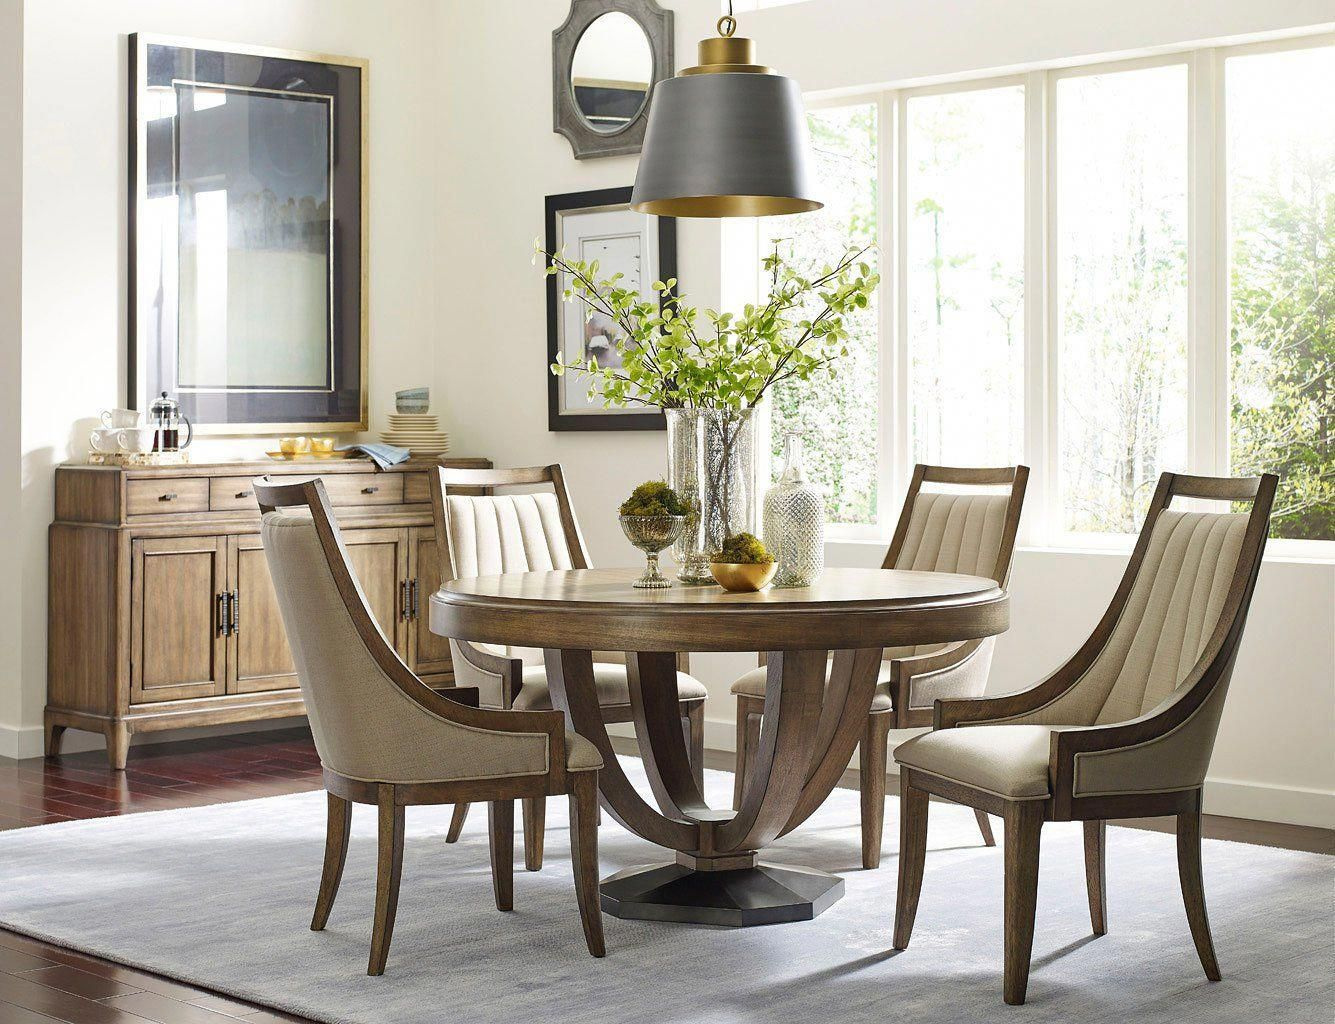 Evoke round dining room set diningroomfurniture furniture